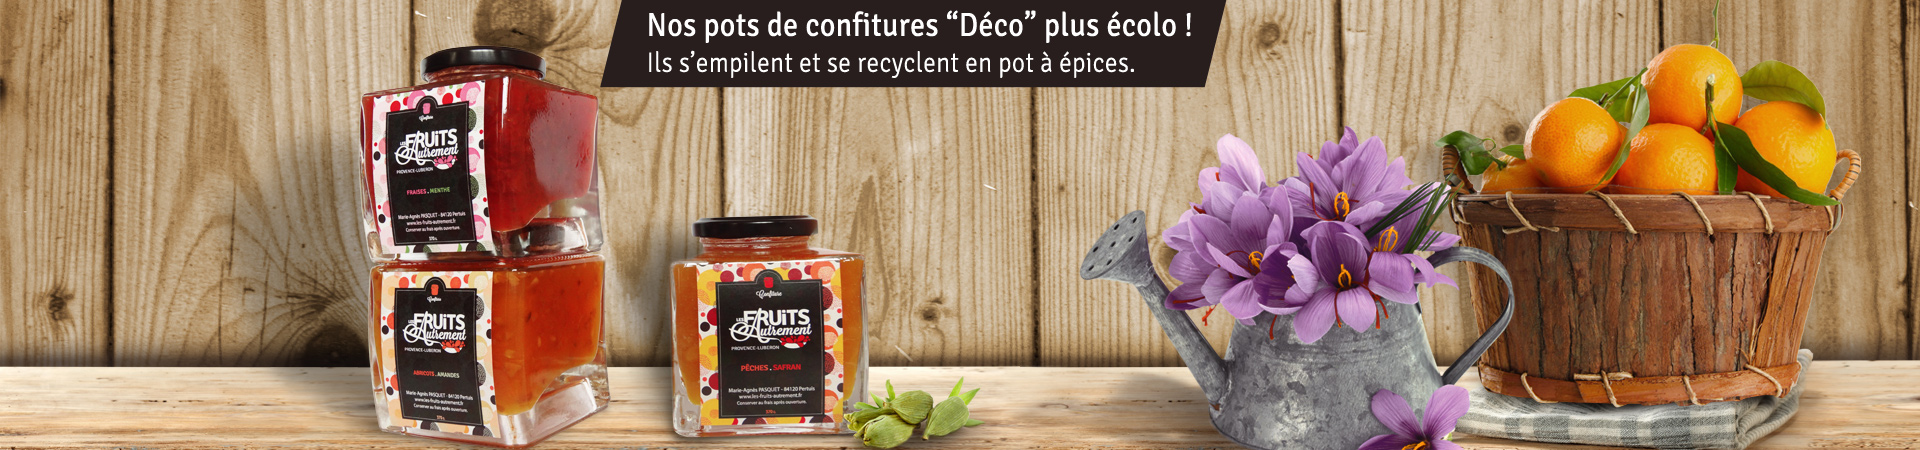 pub-pot-confiture-deco